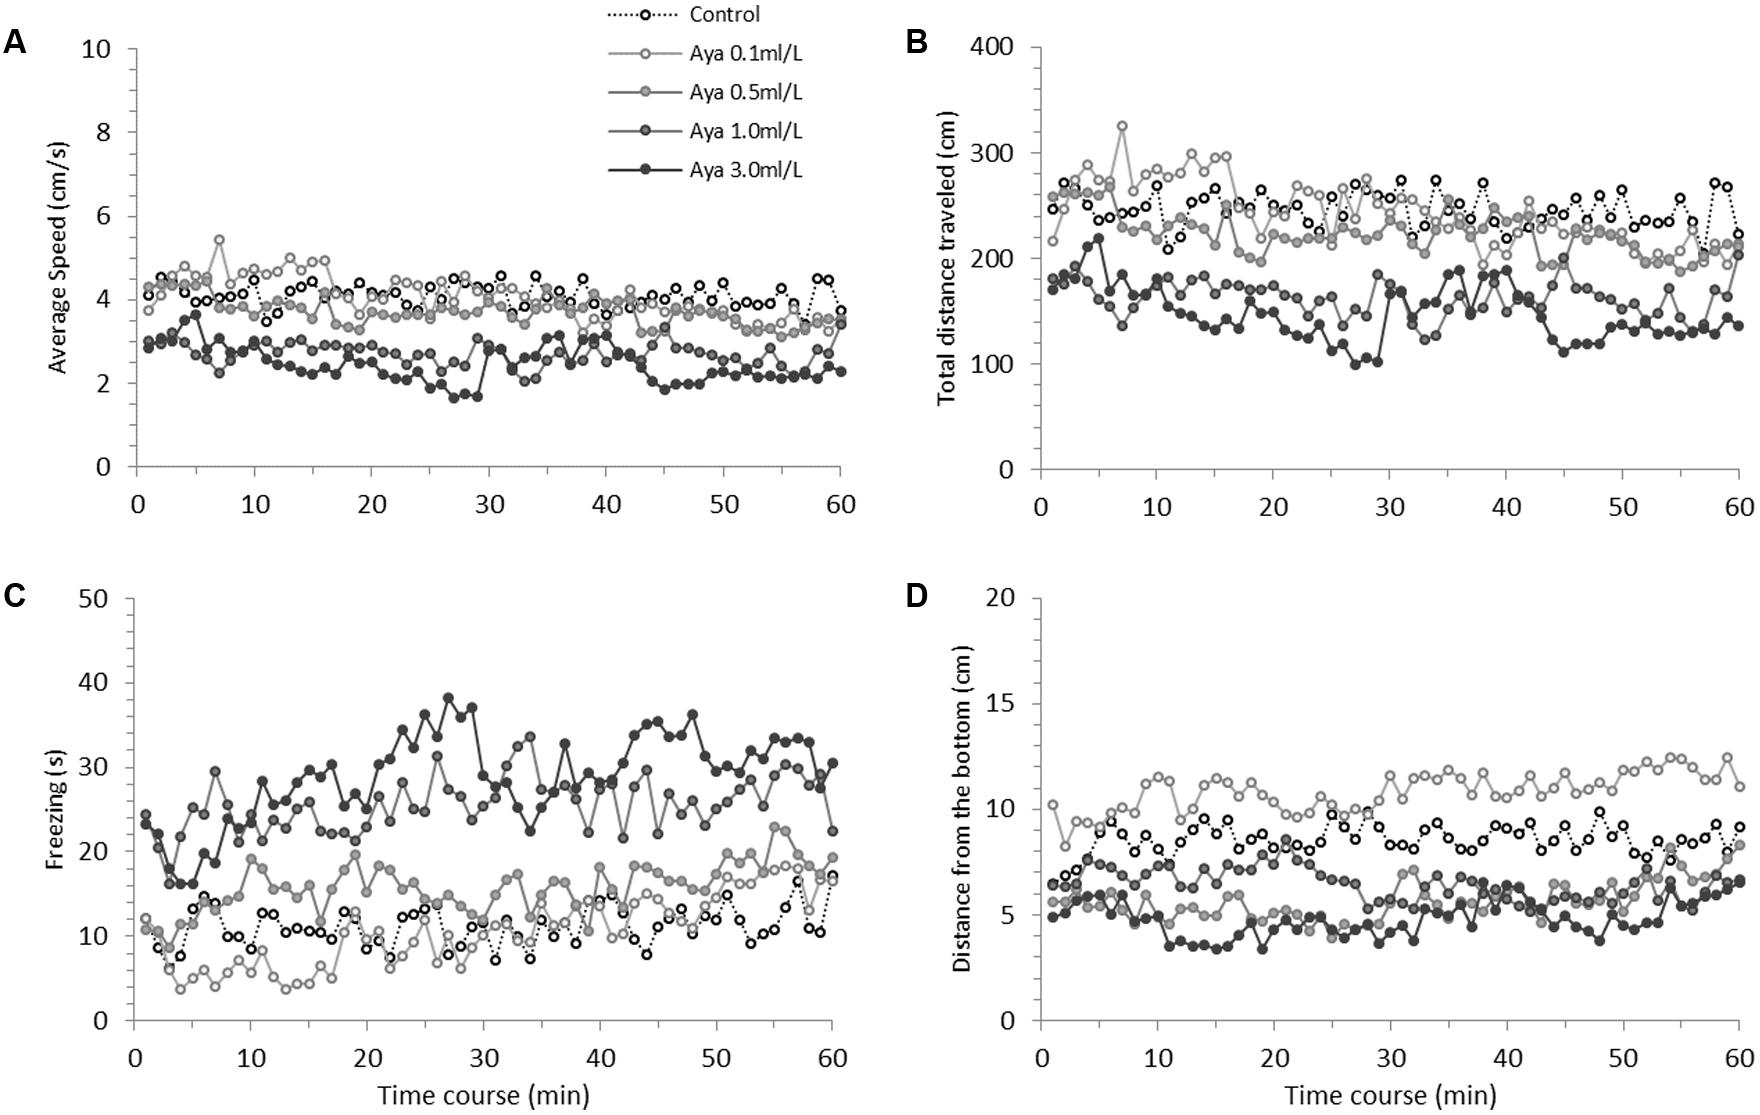 Frontiers Behavioral Changes Over Time Following Ayahuasca 2005 Montero Fuse Diagram